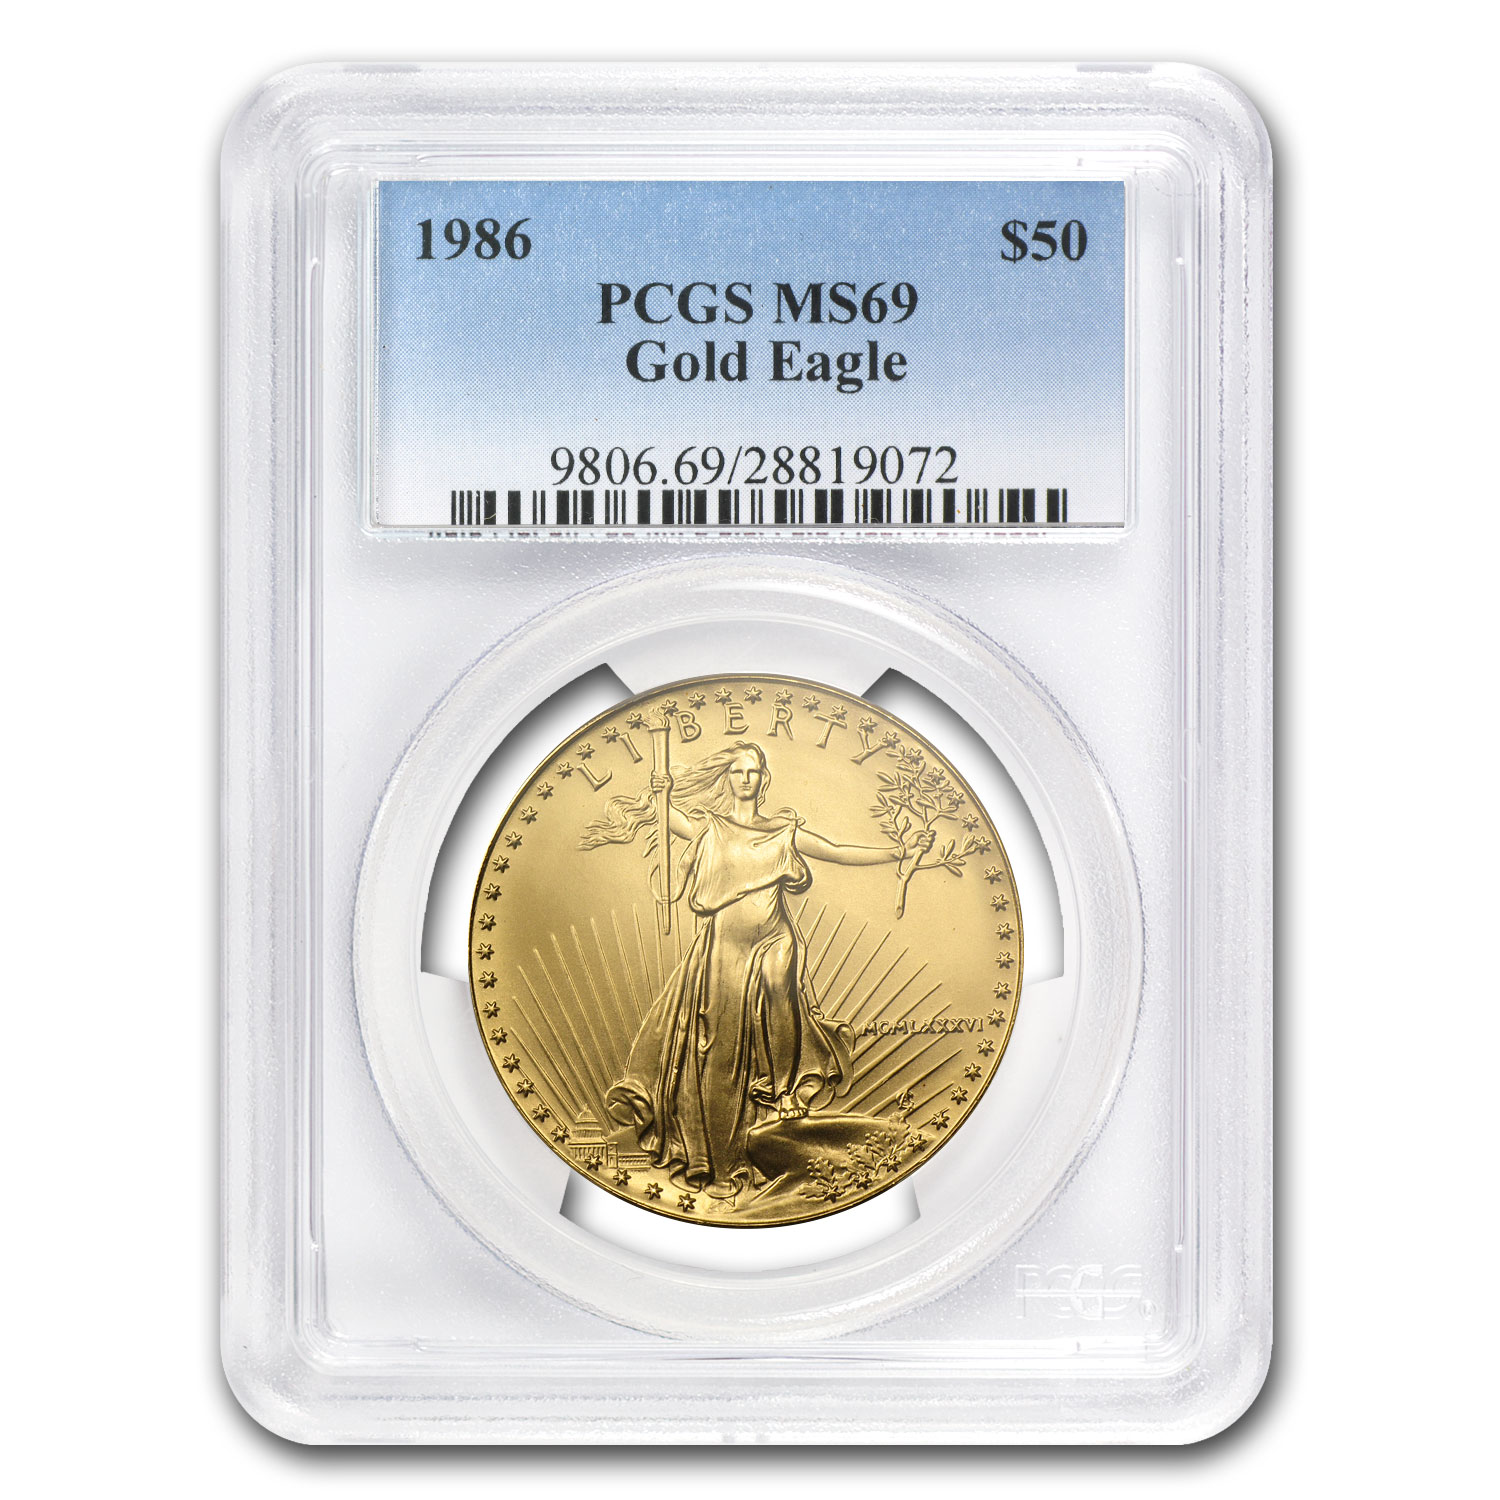 1986 1 oz Gold American Eagle MS-69 PCGS